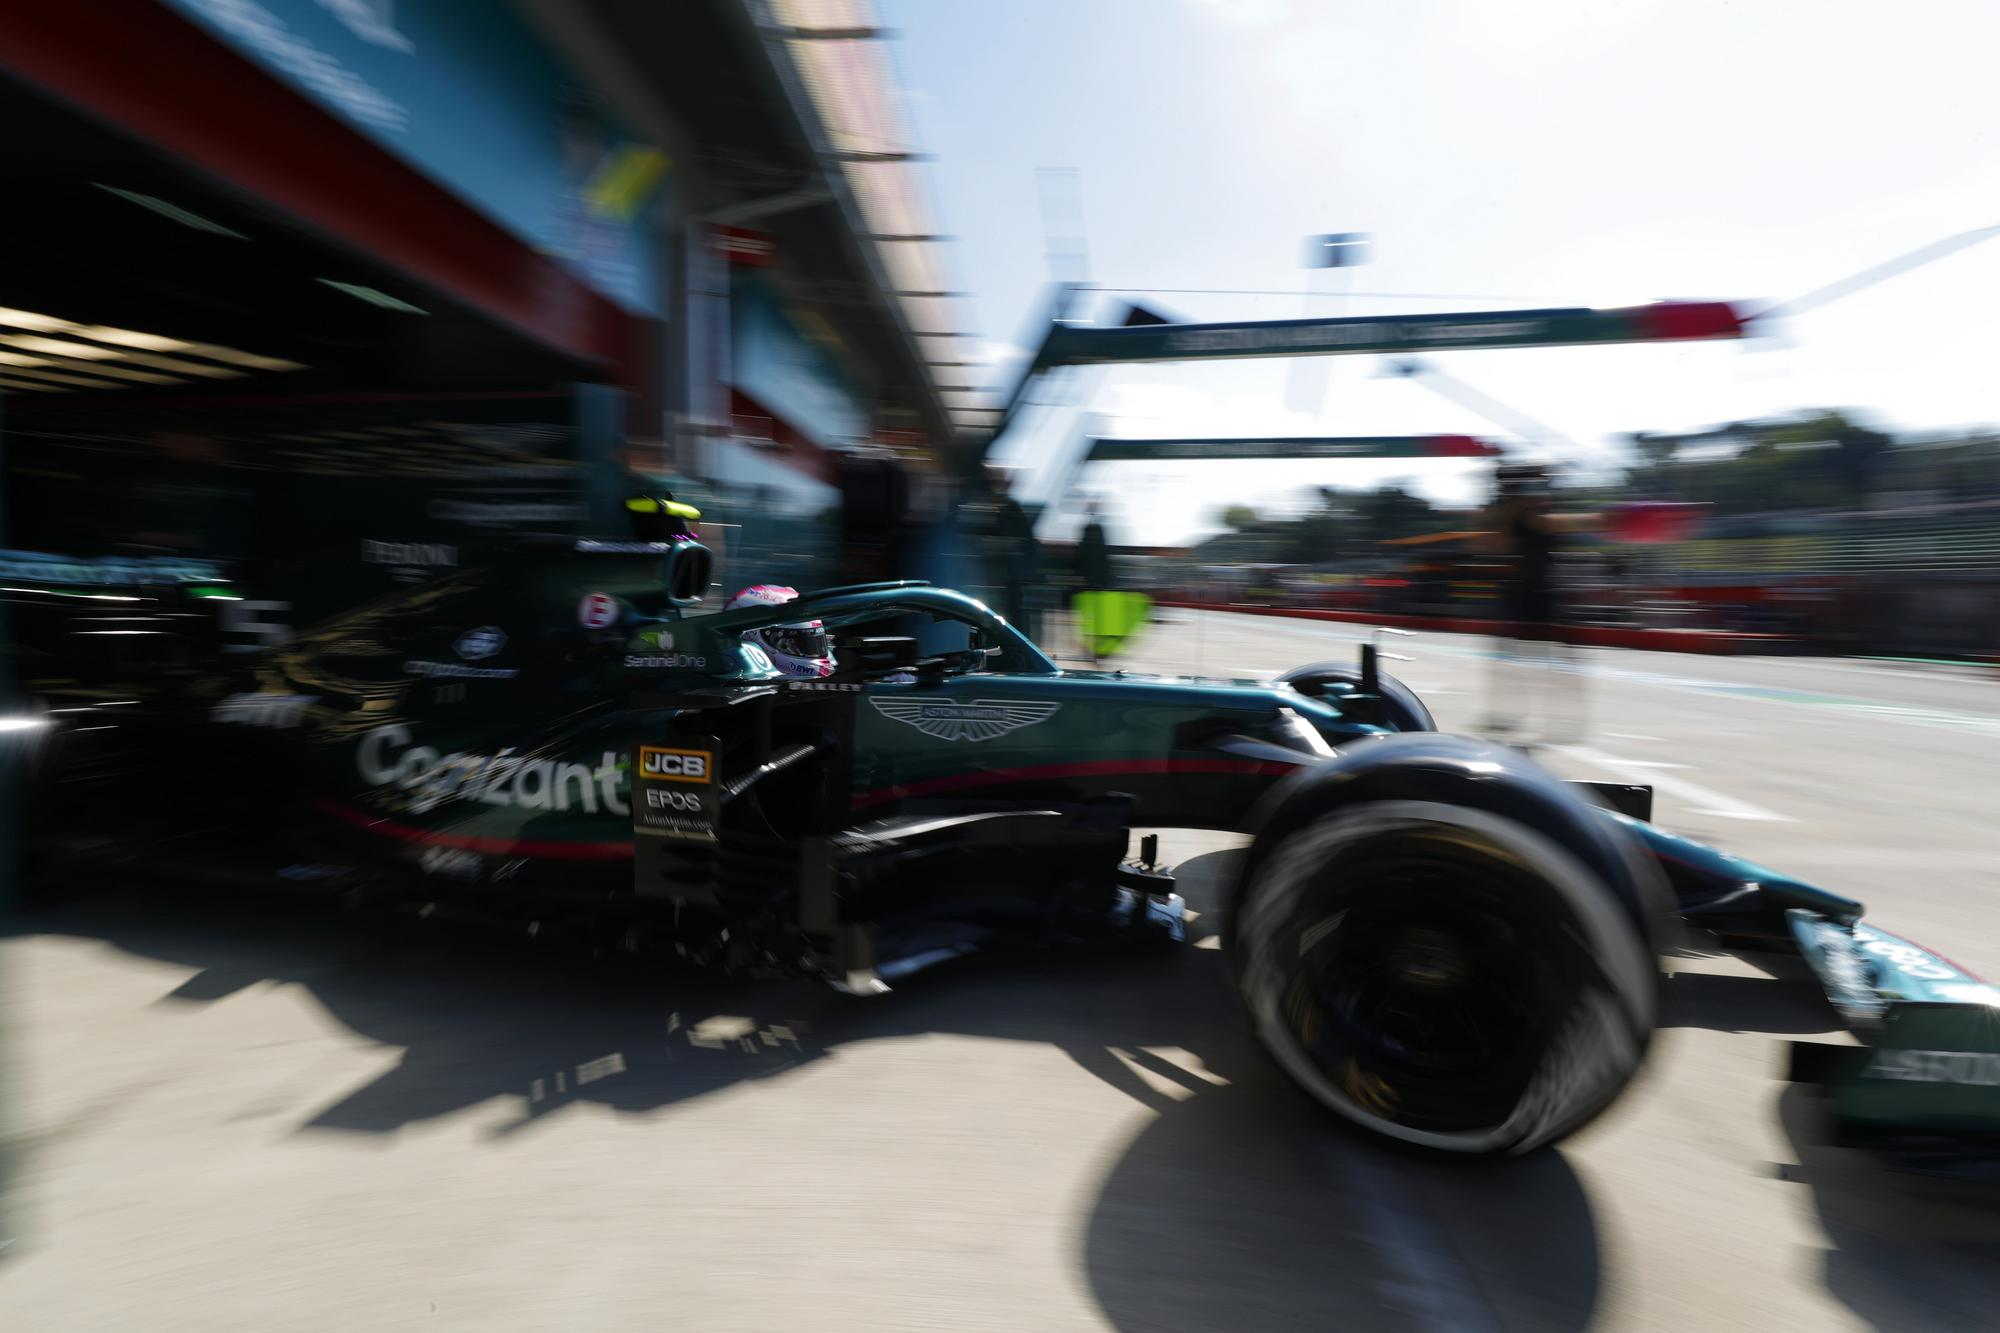 Aston Martin boss hints at legal action against FIA